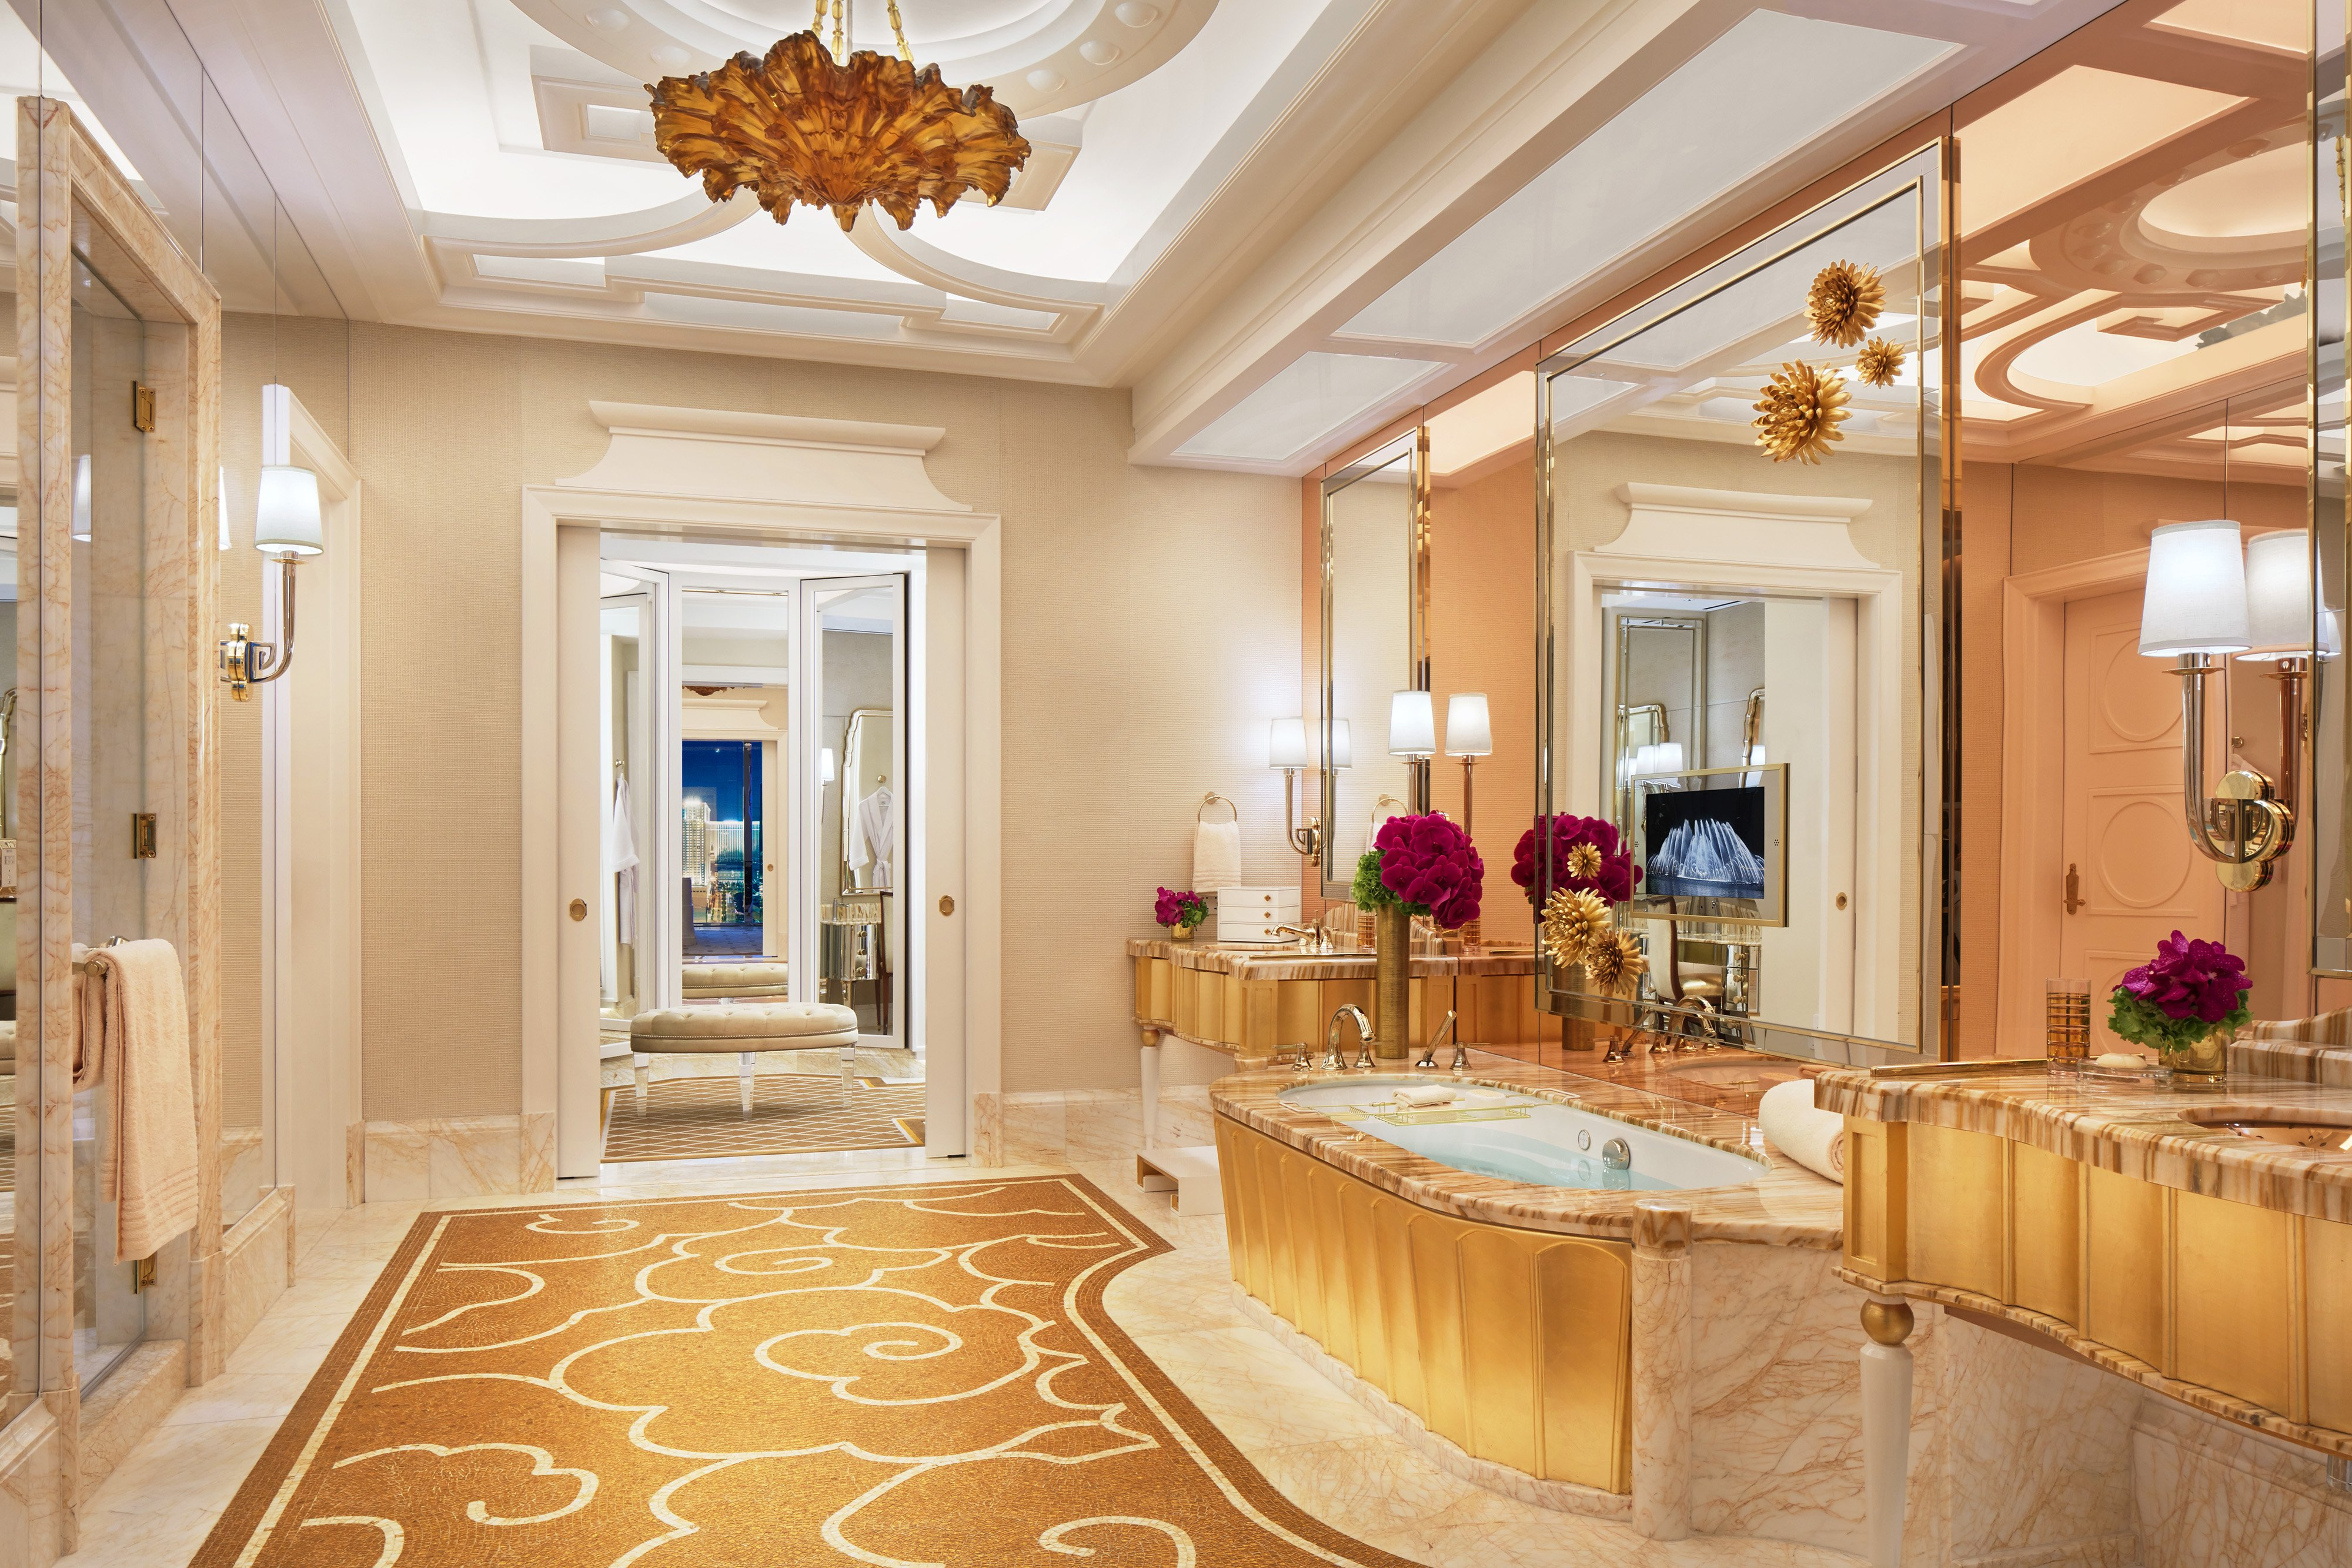 First Look Inside Us 4 2 Billion Wynn Palace Ahead Of Its